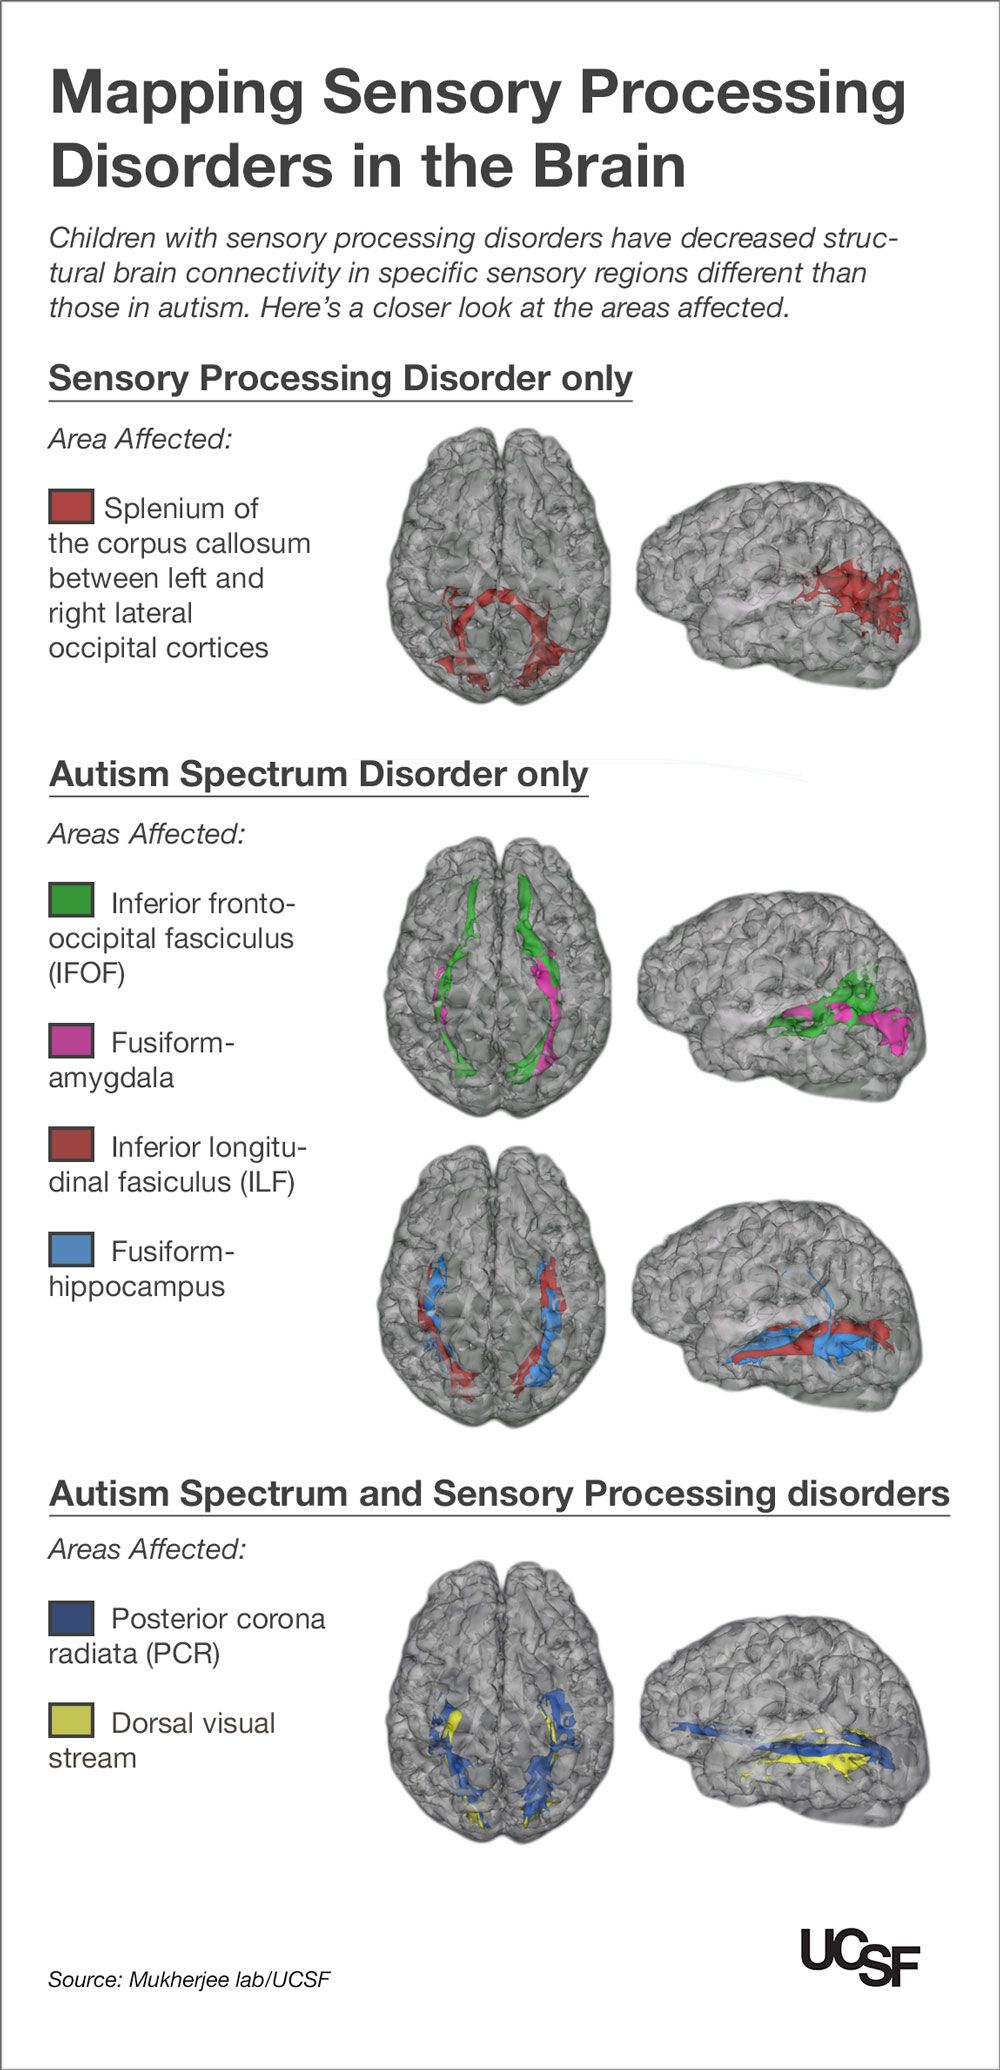 Kids with Autism Sensory Processing Disorders Show Brain Wiring